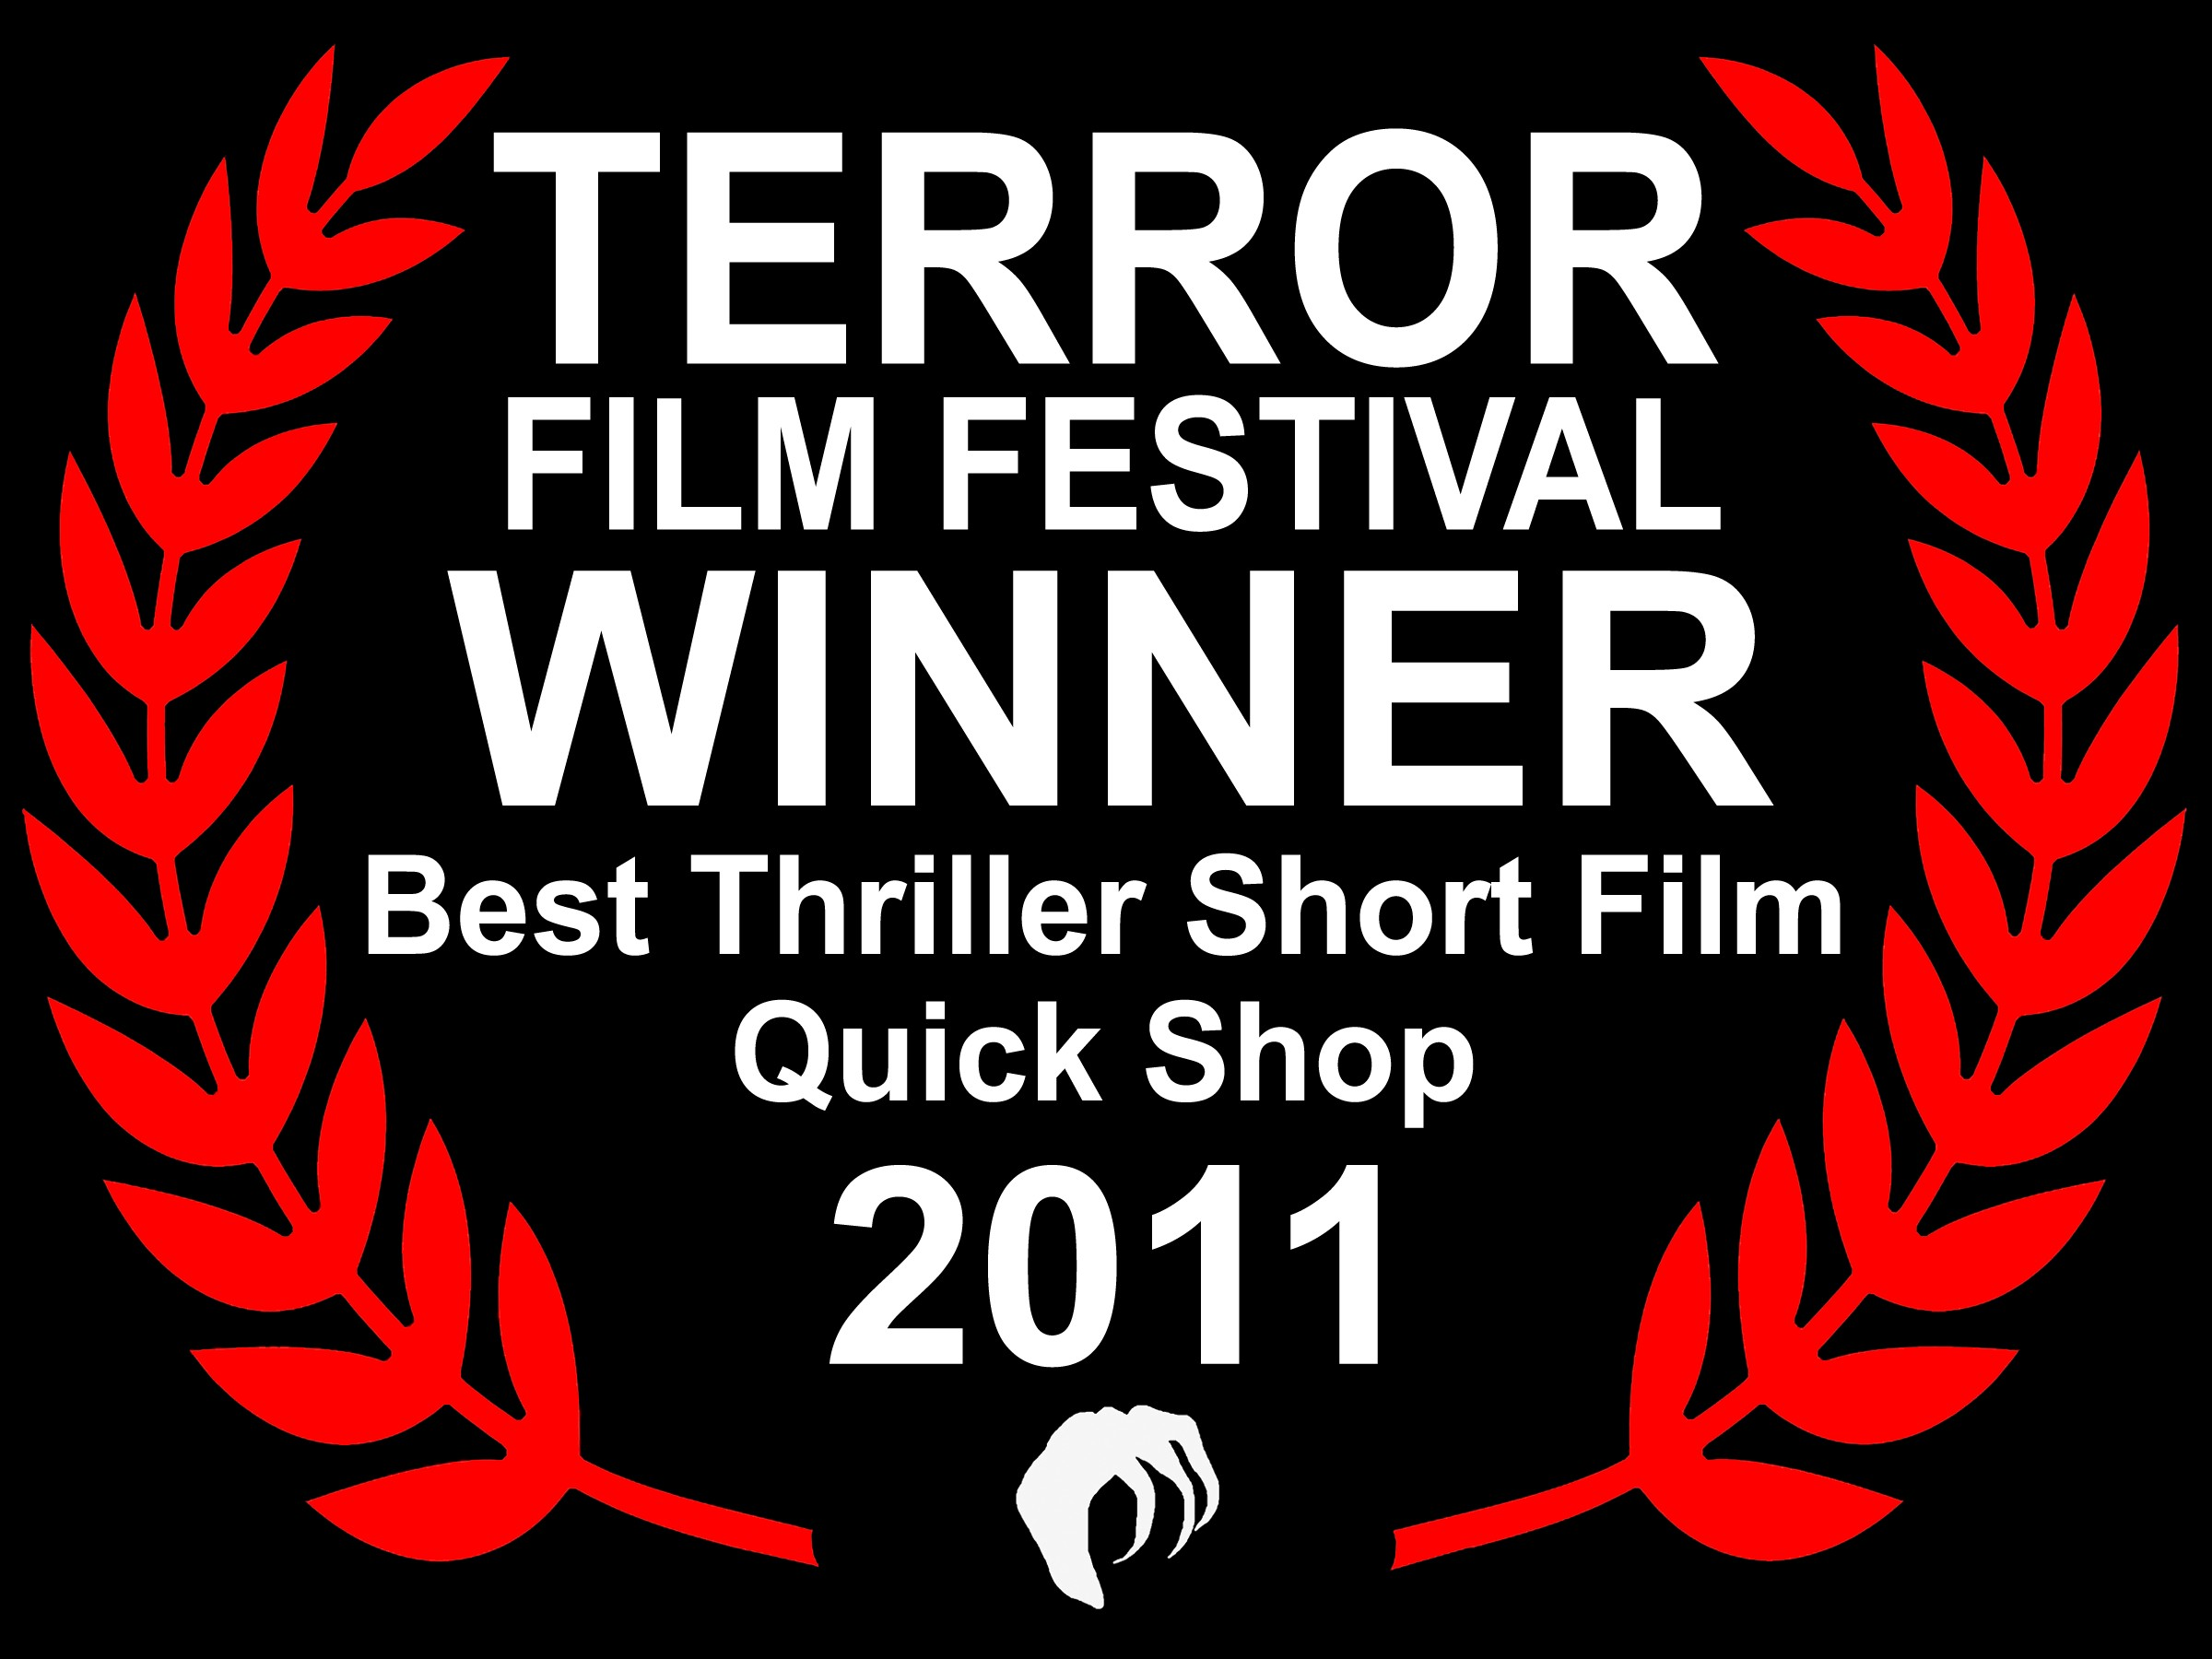 Quick Shop wins Best Thriller Short Film Claw Award at the 2011 Terror Film Festival in Philadelphia, PA